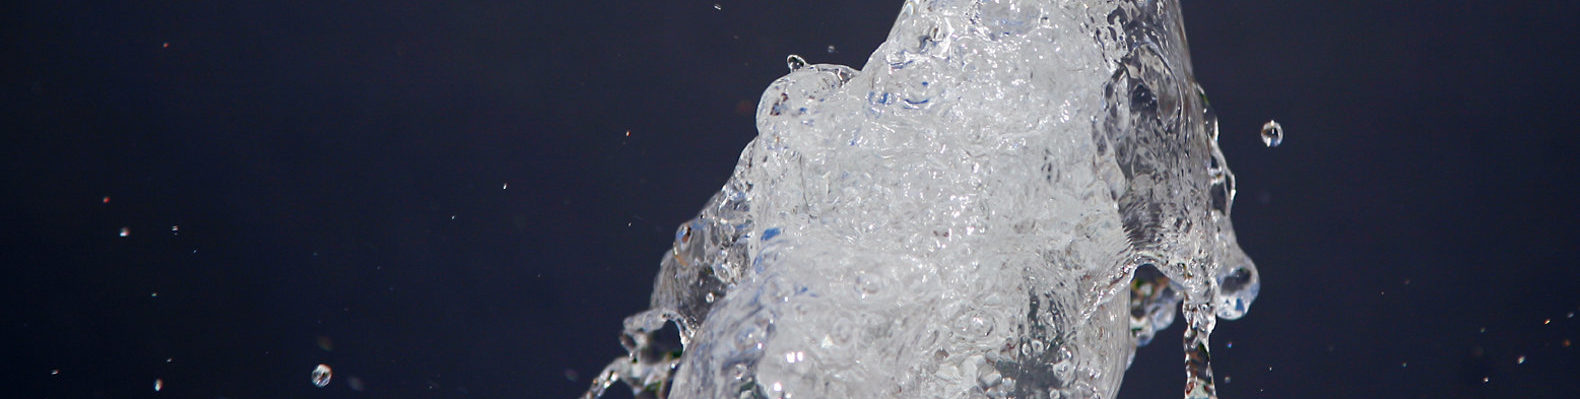 New desalination method from Qatar recycles waste brine and excess